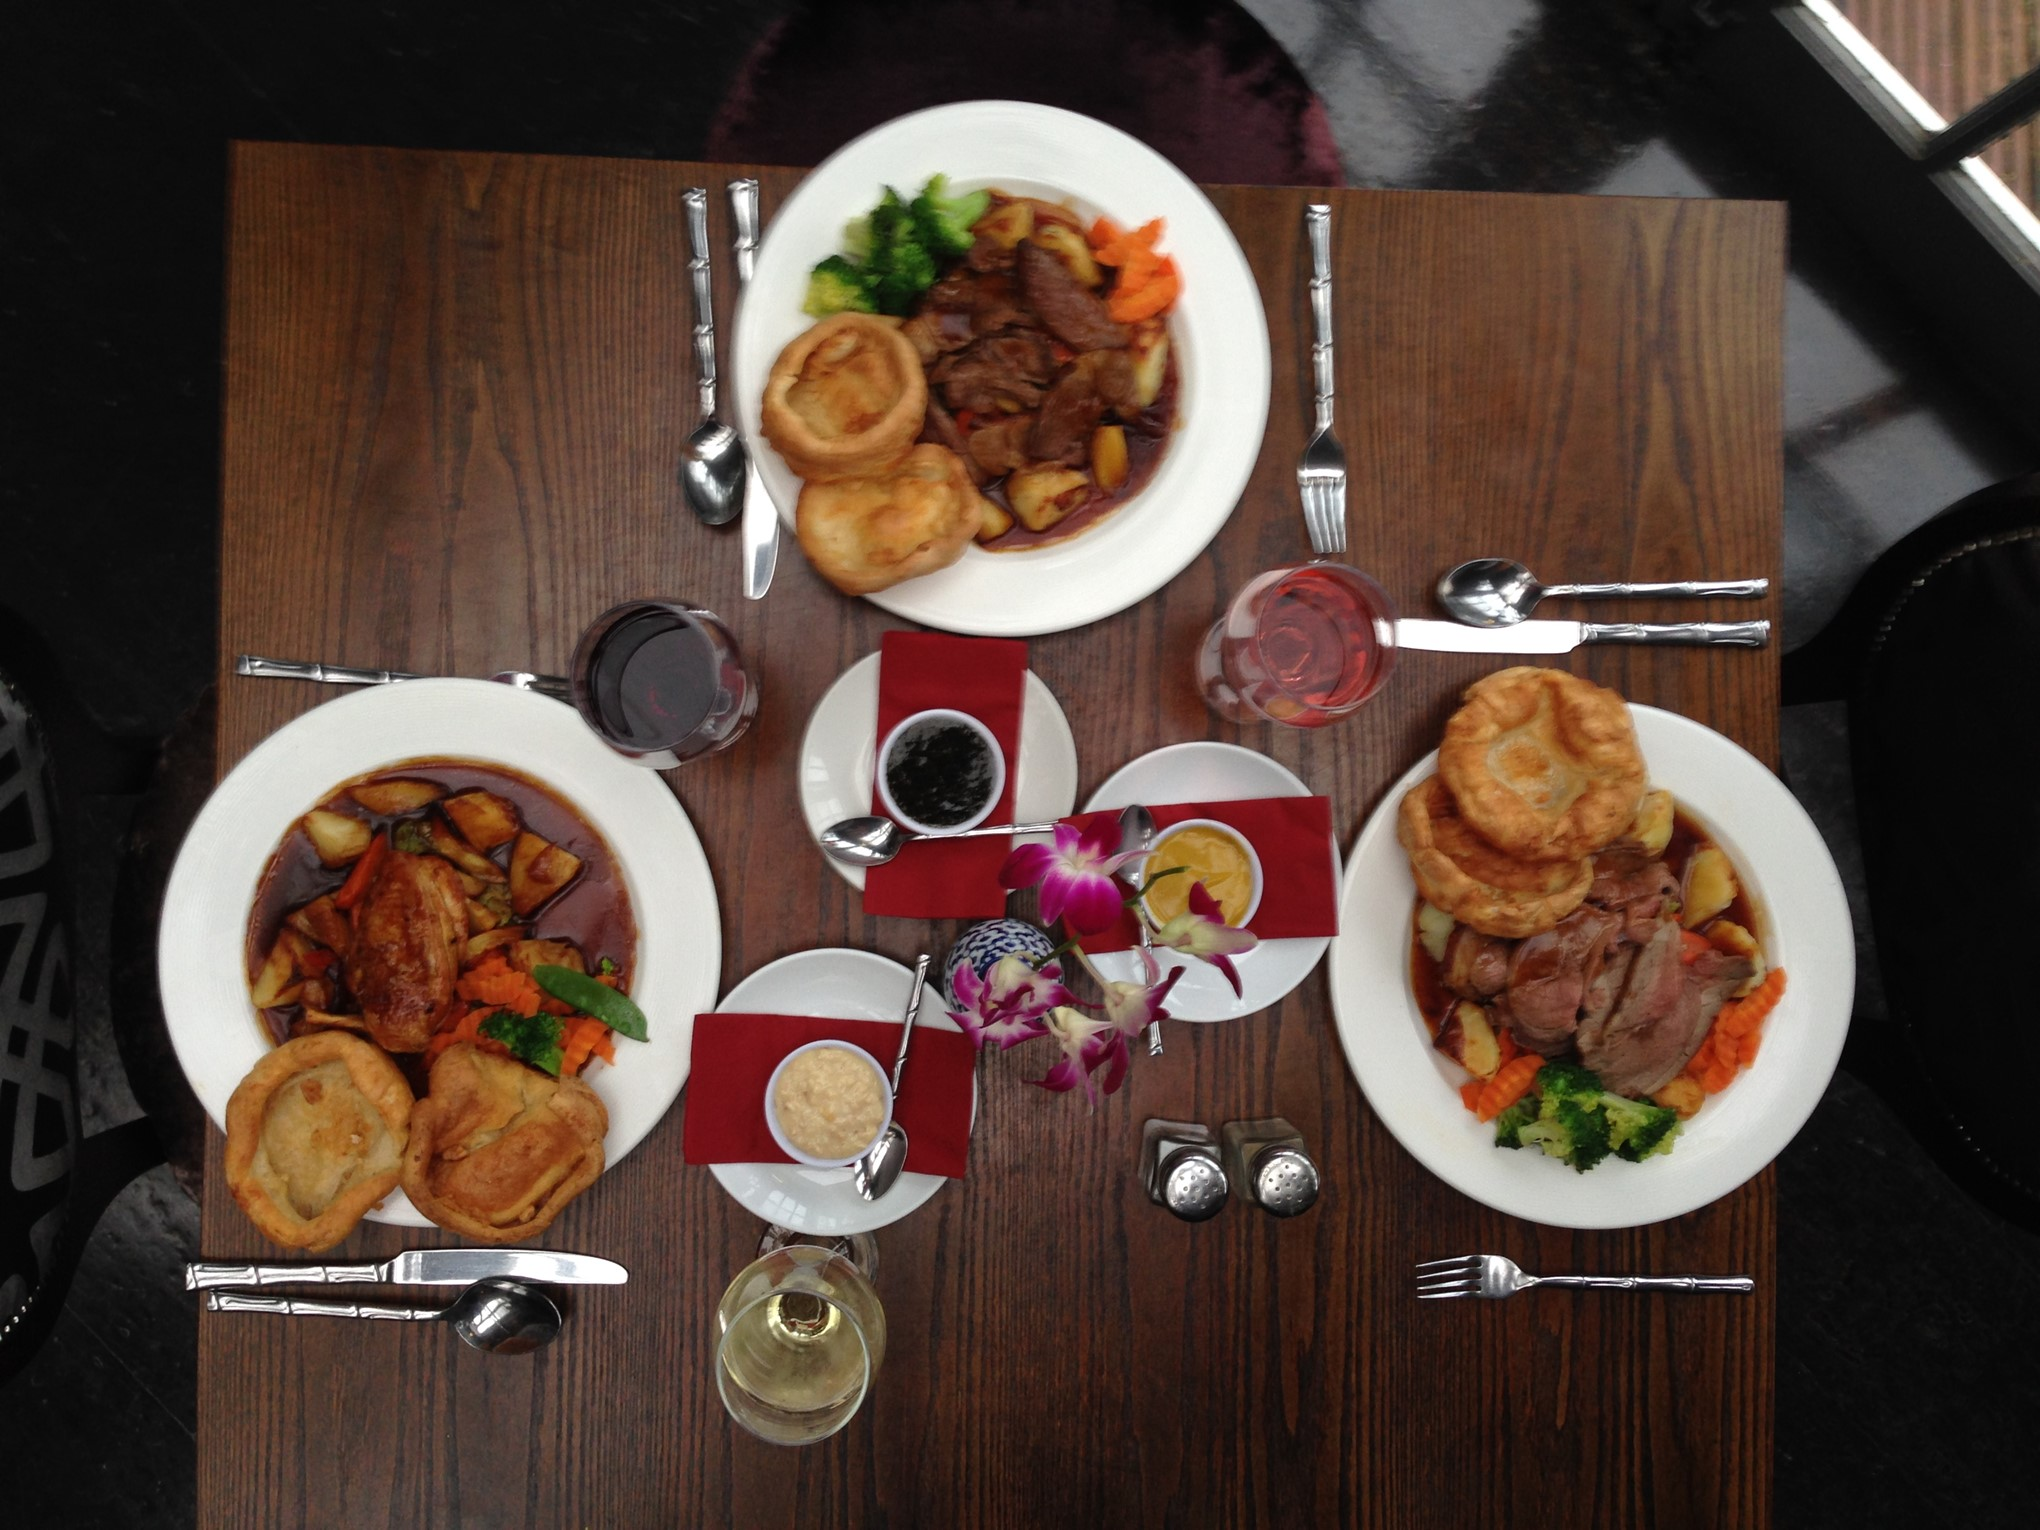 Sunday Lunch at the Rose!